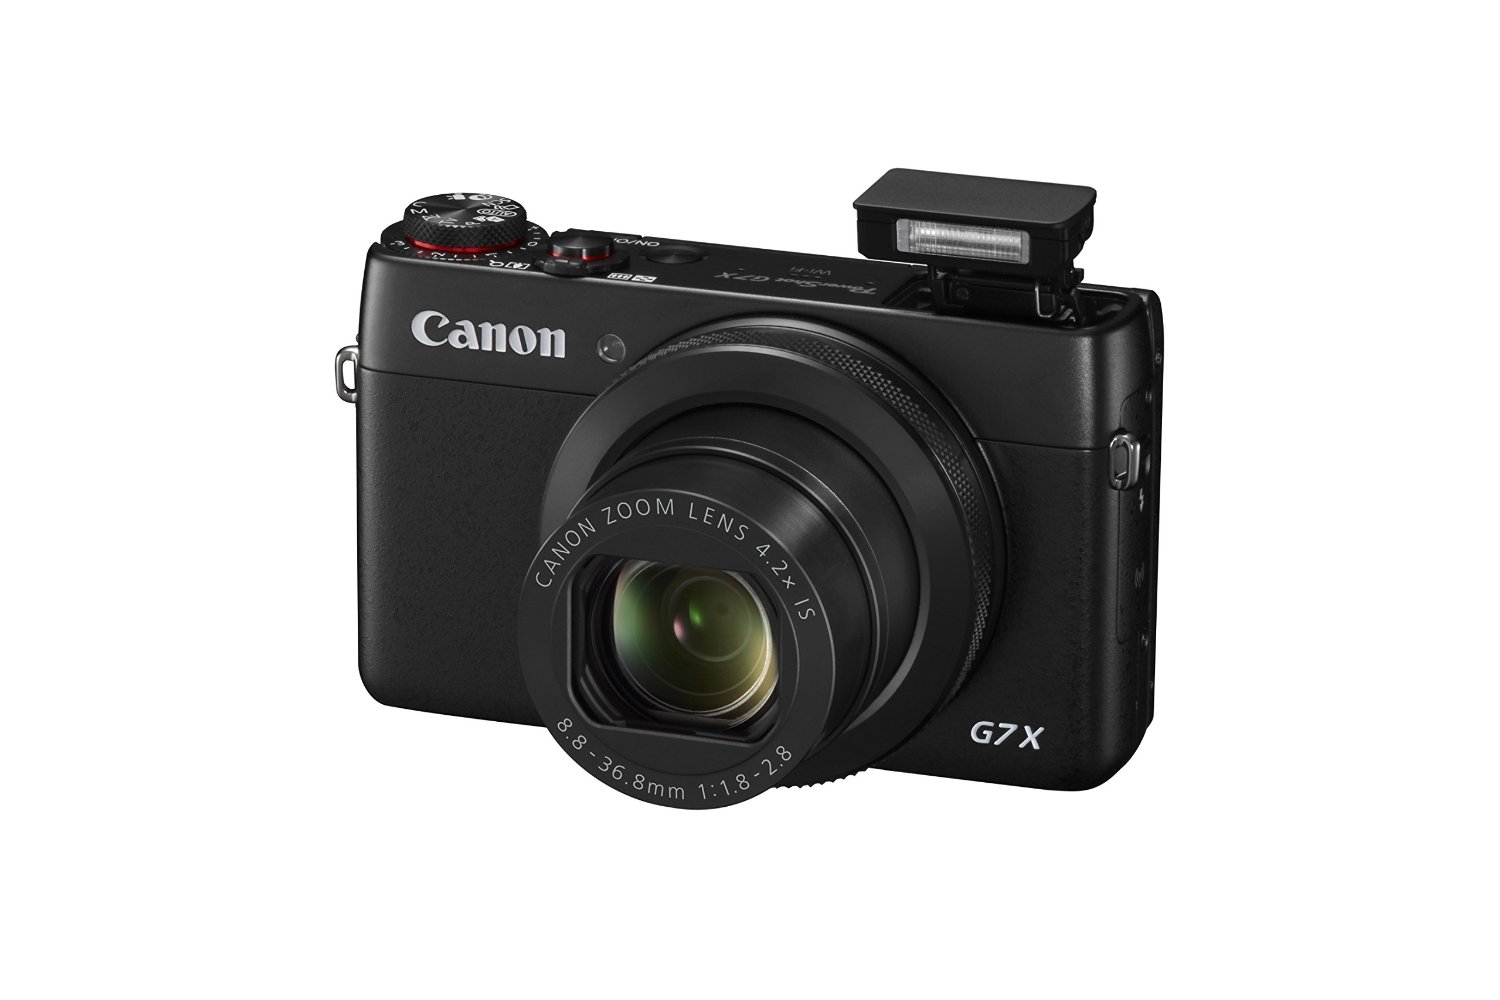 canon powershot g7 x camera user guide or instruction manual rh digitalphotographylive com canon g7x repair manual canon g7x owner's manual